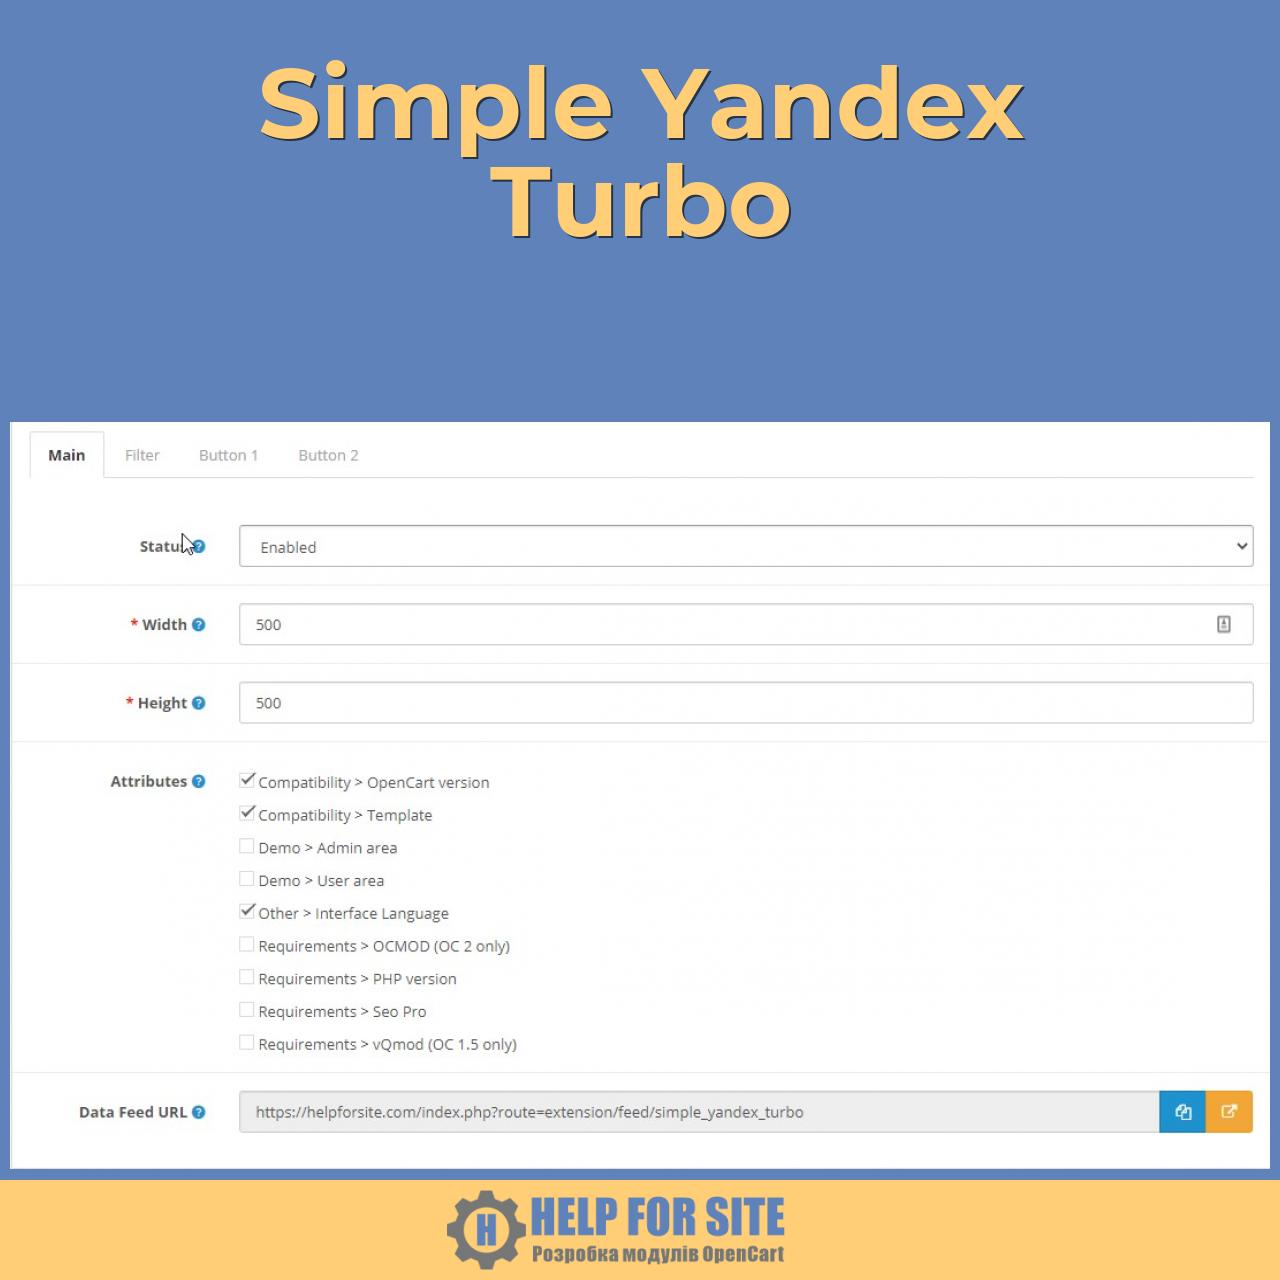 Simple Yandex Turbo